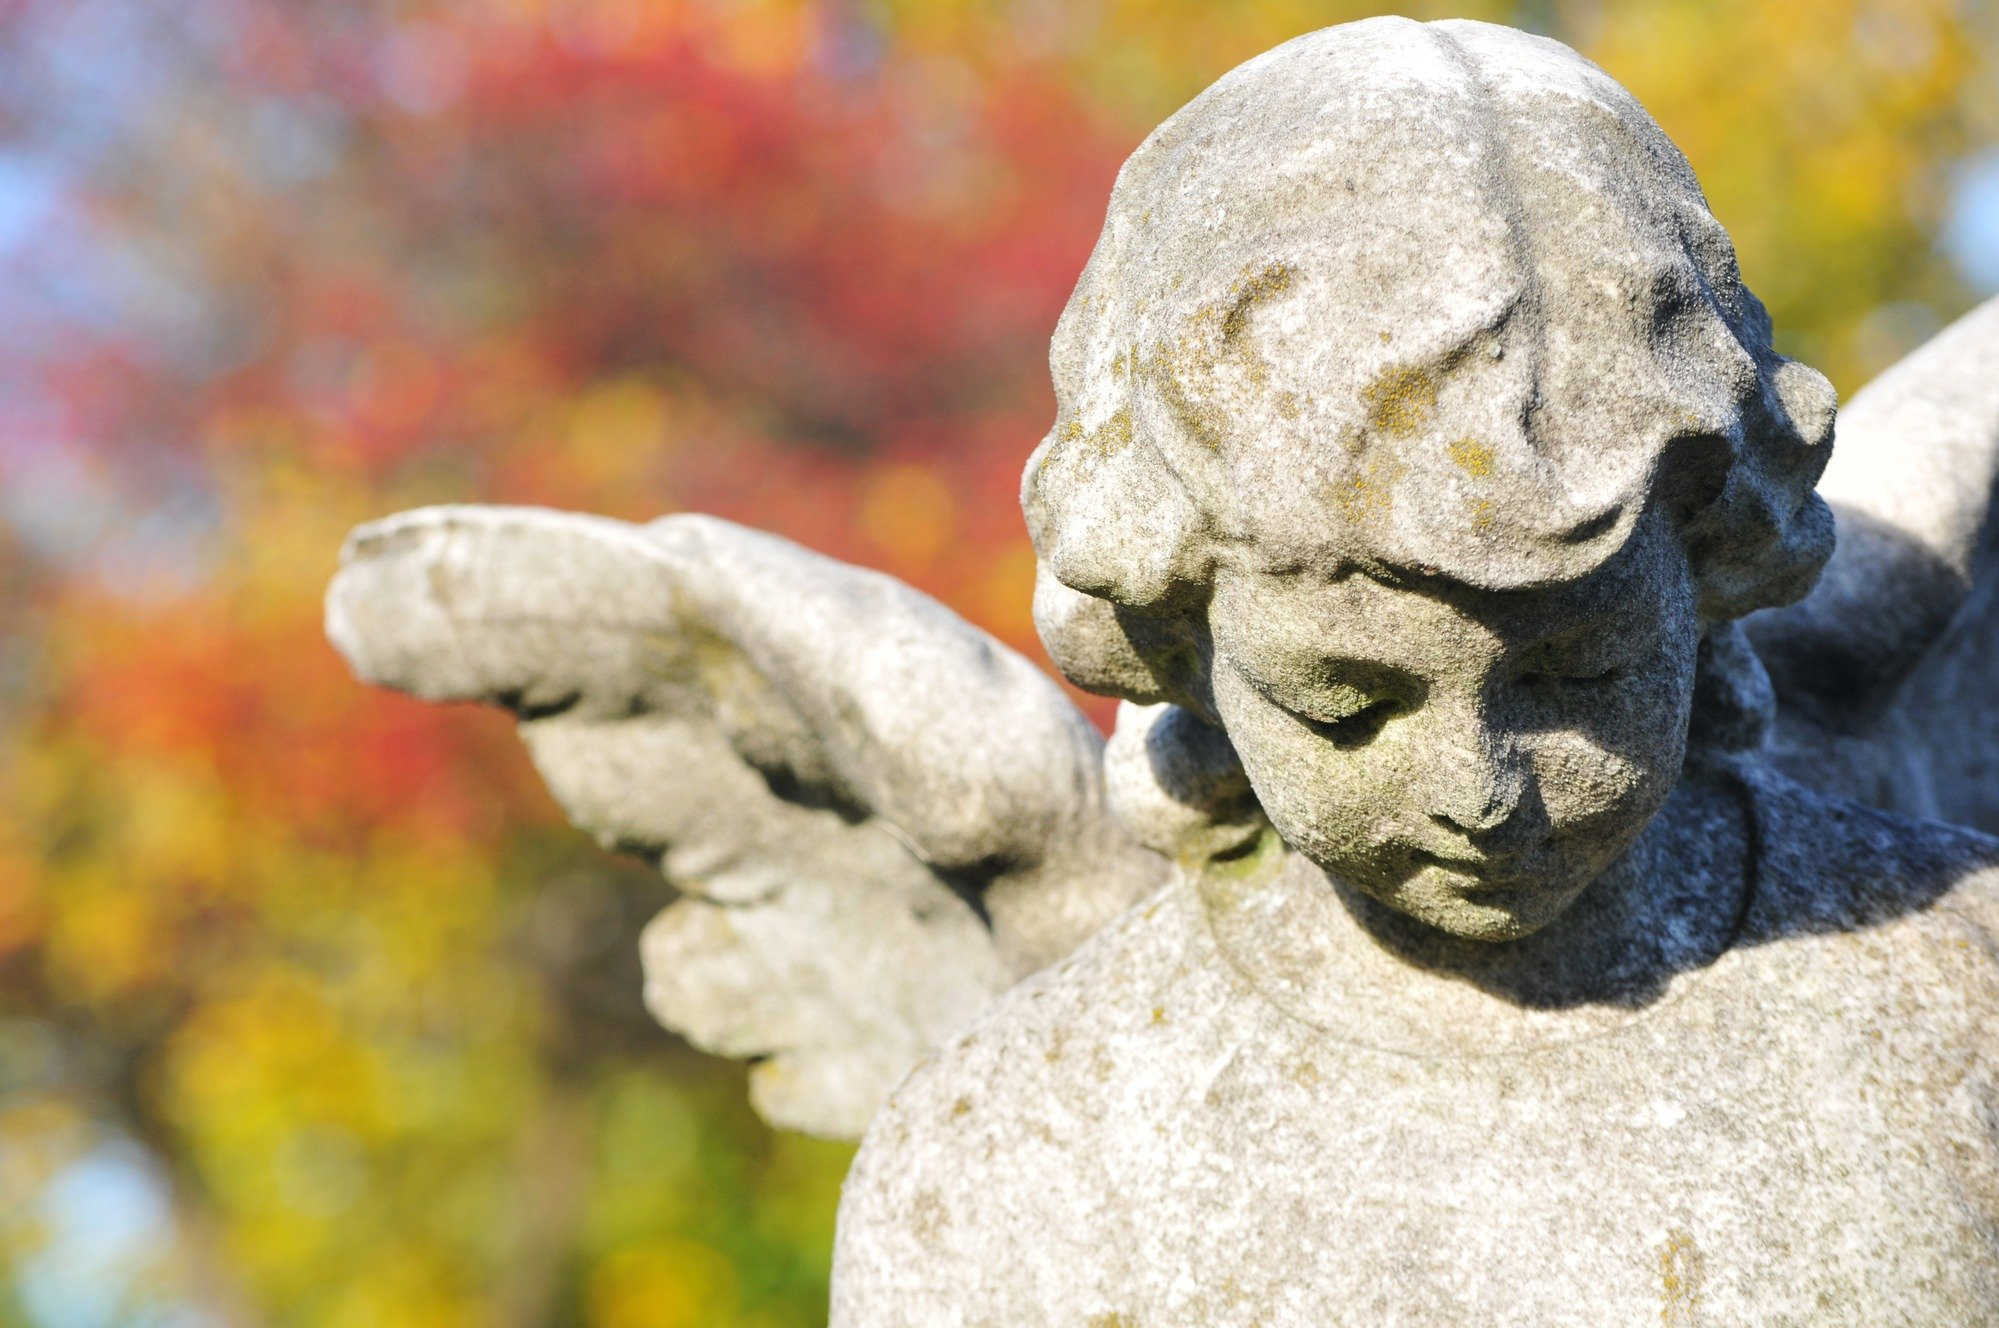 More Information About Funerals And What To Expect